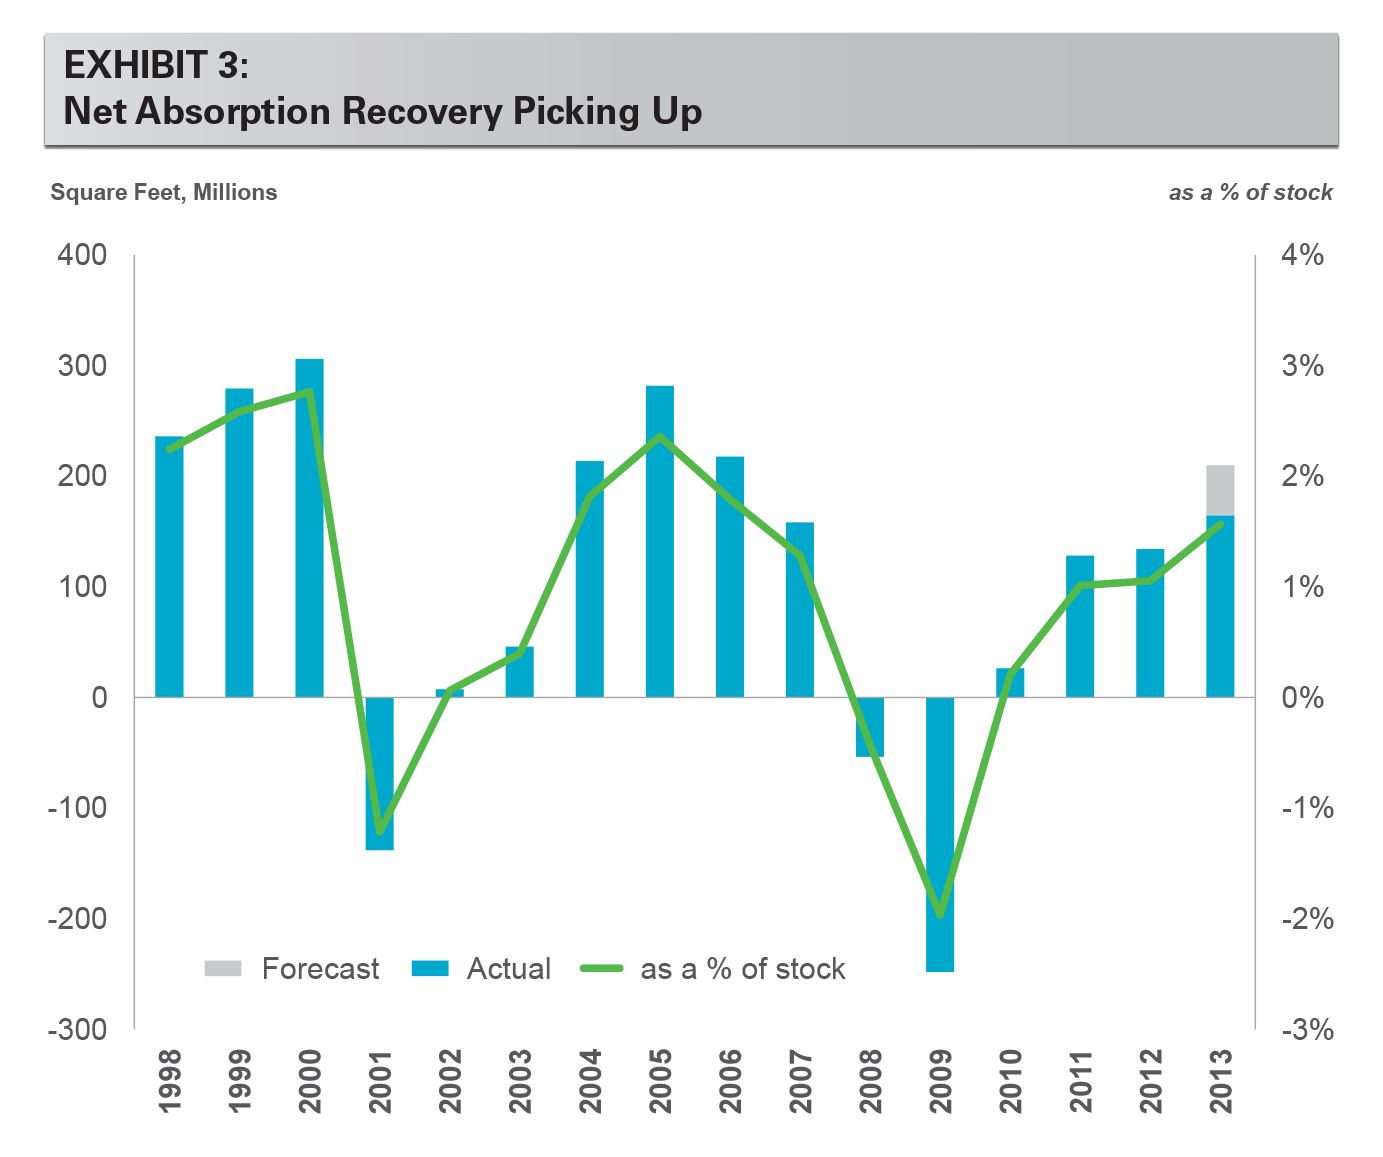 EXHIBIT 3: Net Absorption Recovery Picking Up